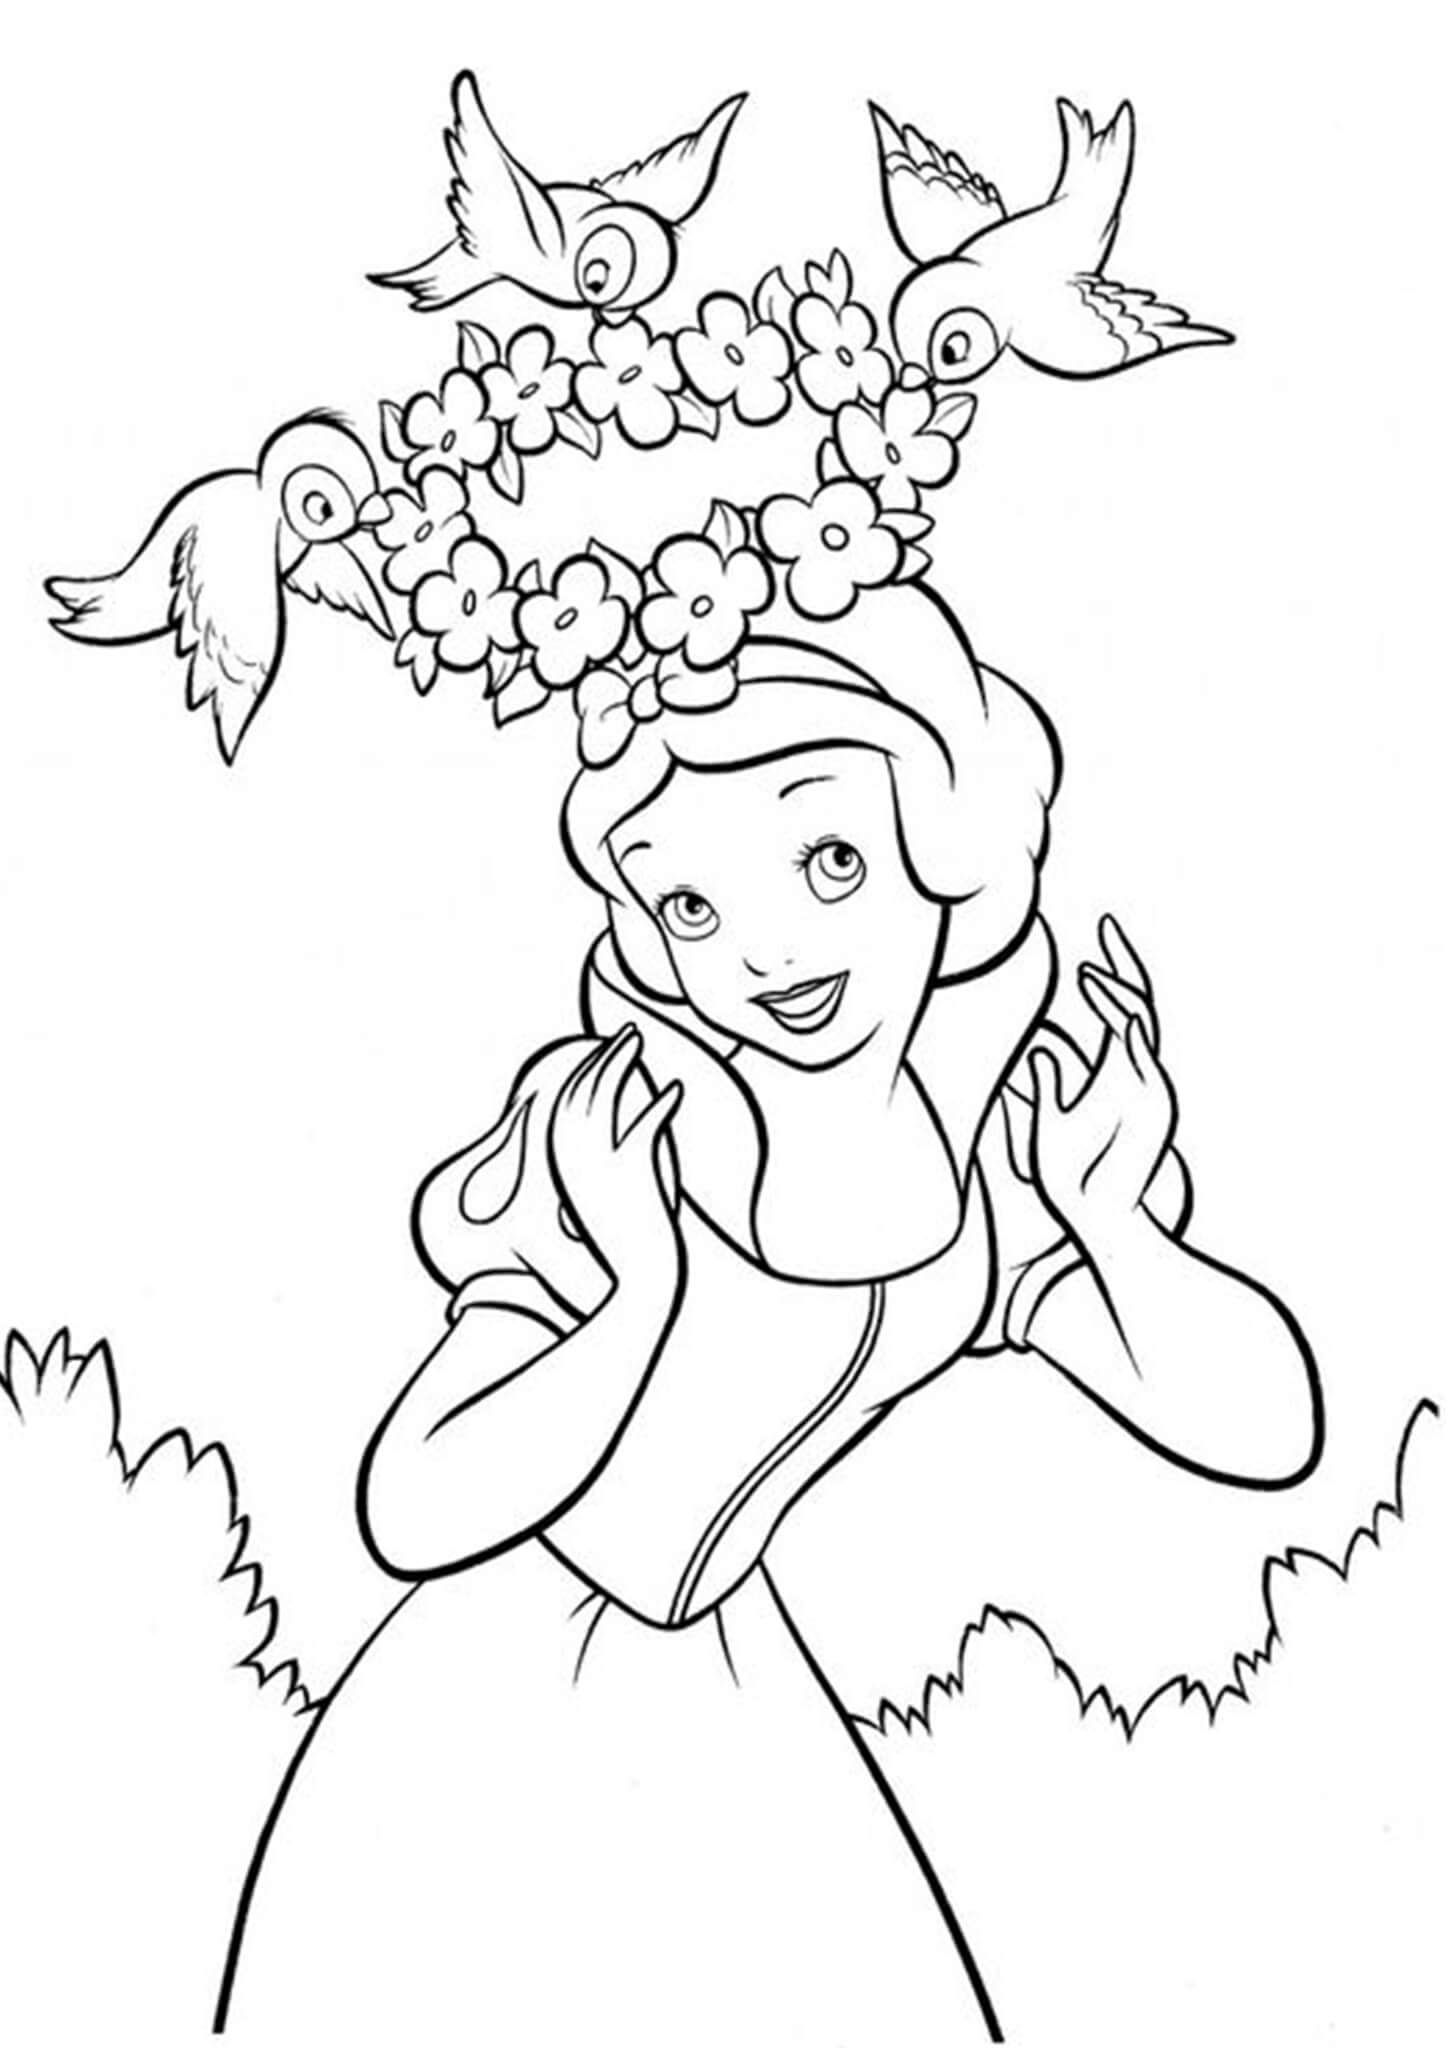 Free Easy To Print Snow White Coloring Pages In 2021 Snow White Coloring Pages Unicorn Coloring Pages Disney Princess Coloring Pages